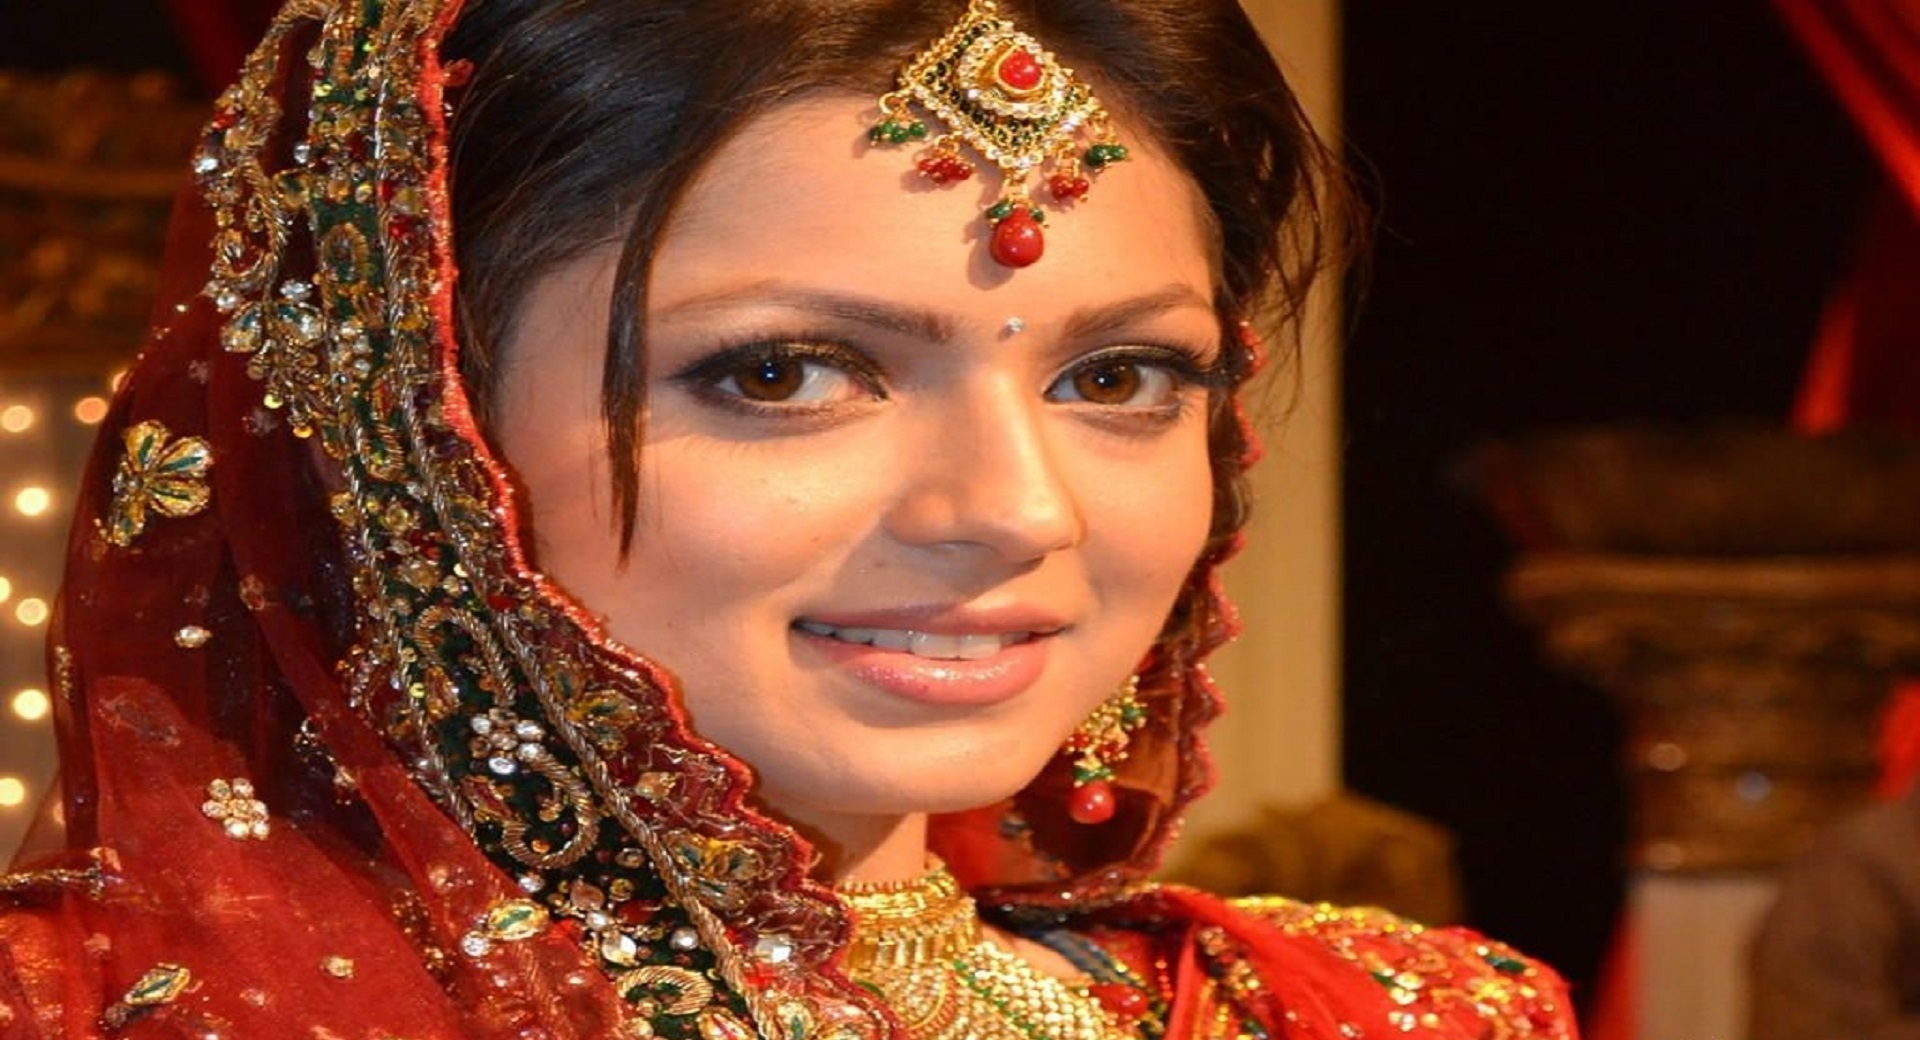 amazing drashti dhami homely face deskop free mobile images hd background